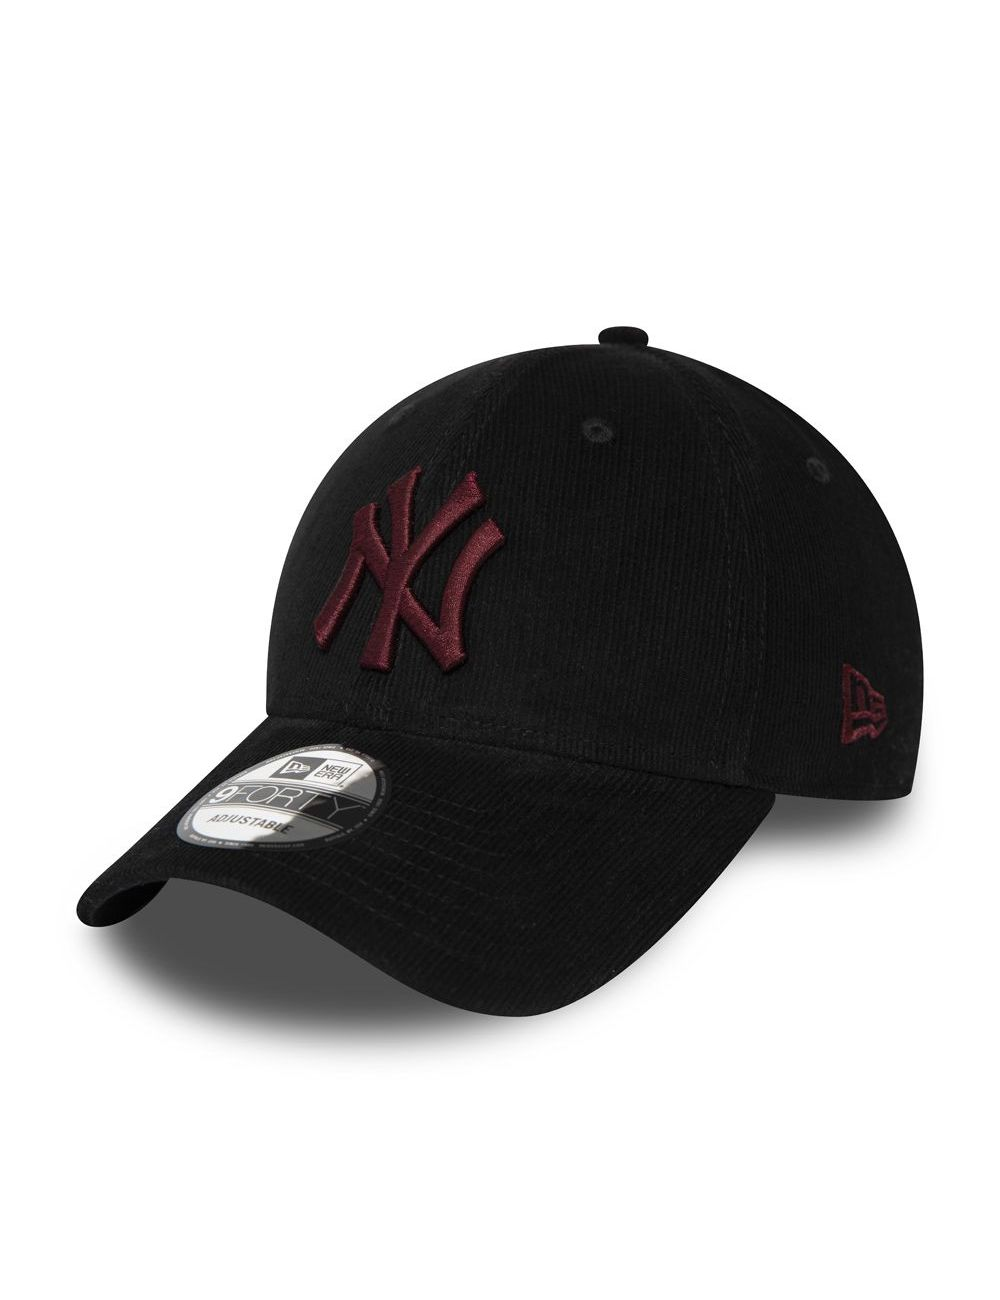 Casquette New Era 9FORTY New York Yankees Corduroy noire 12285530